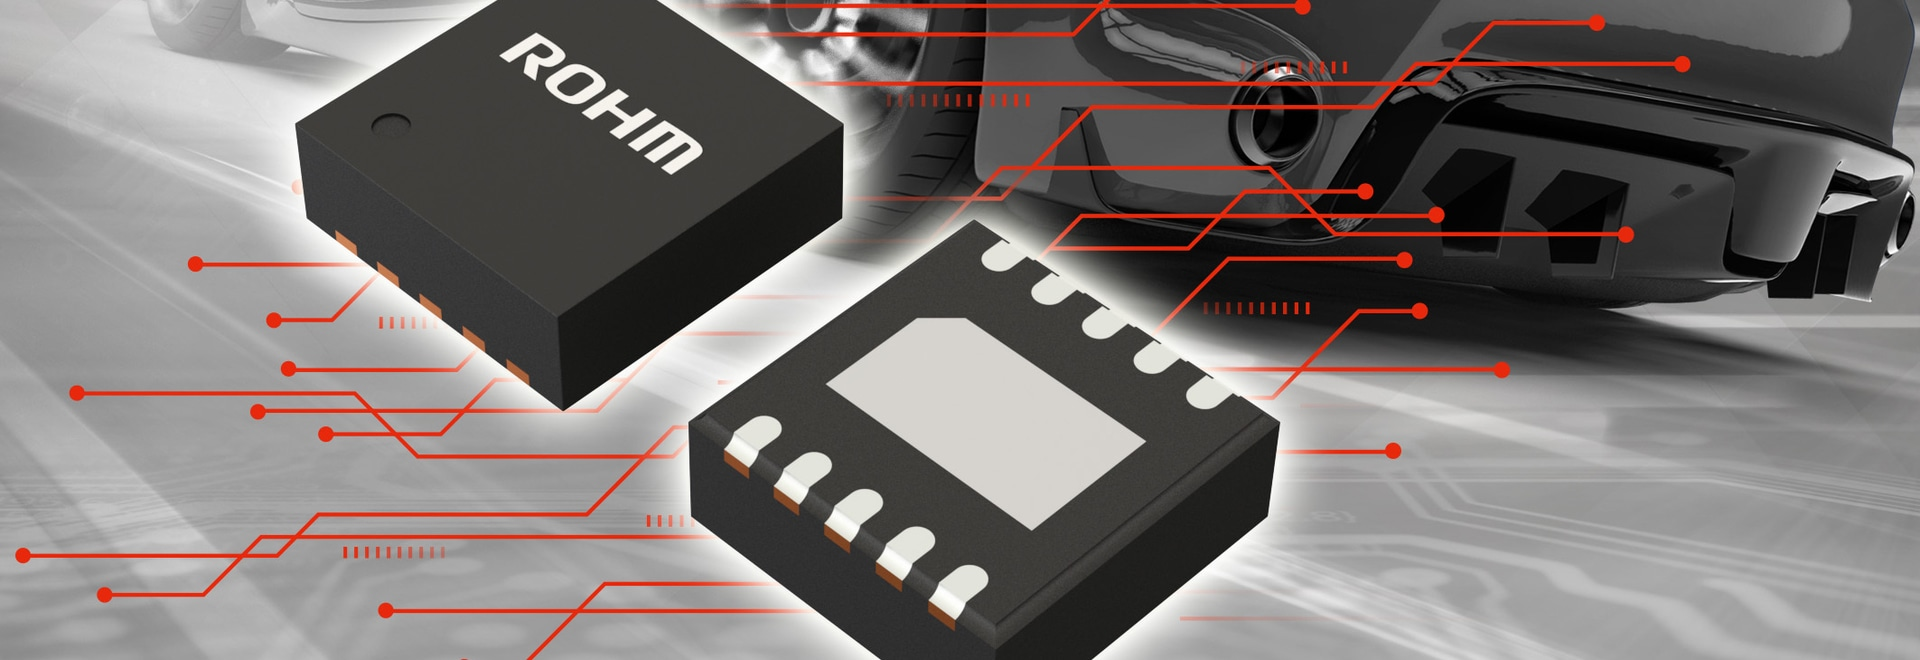 New Automotive Monolithic LED Driver that Ensures Stable Lighting Even During Battery Voltage Drops